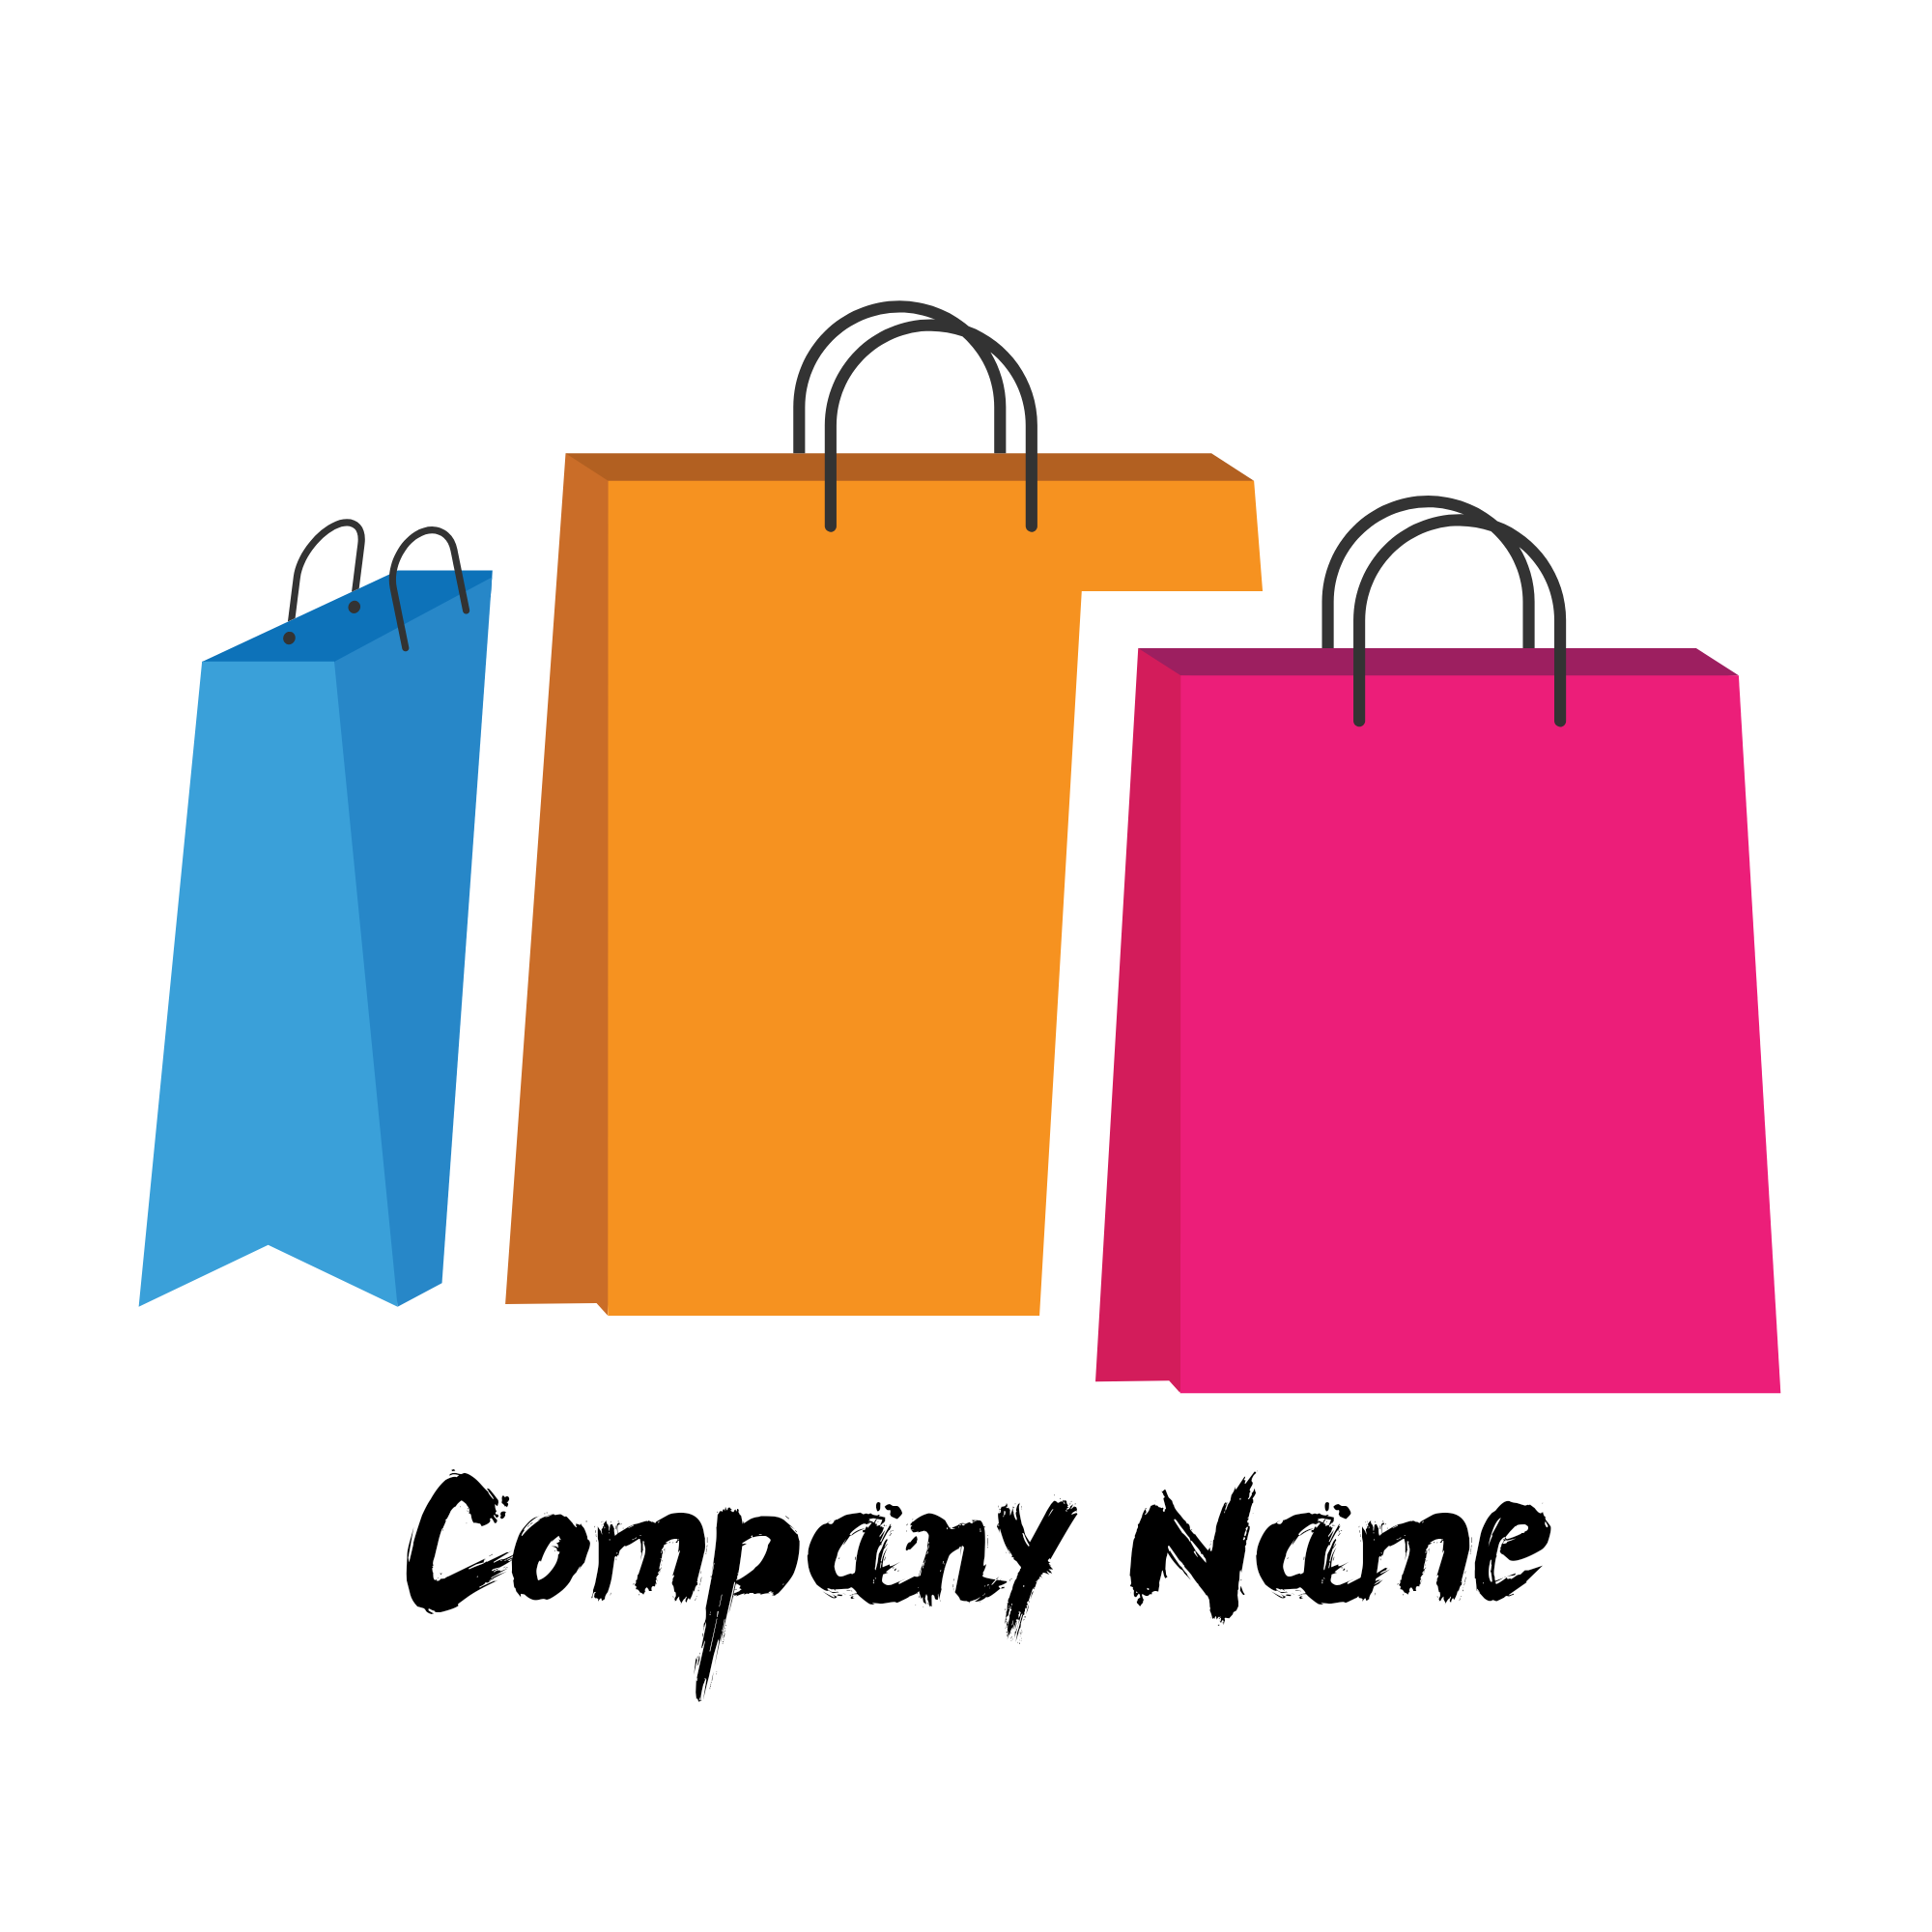 Professional and minimalist logo/graphic designs for web,  channel and business.